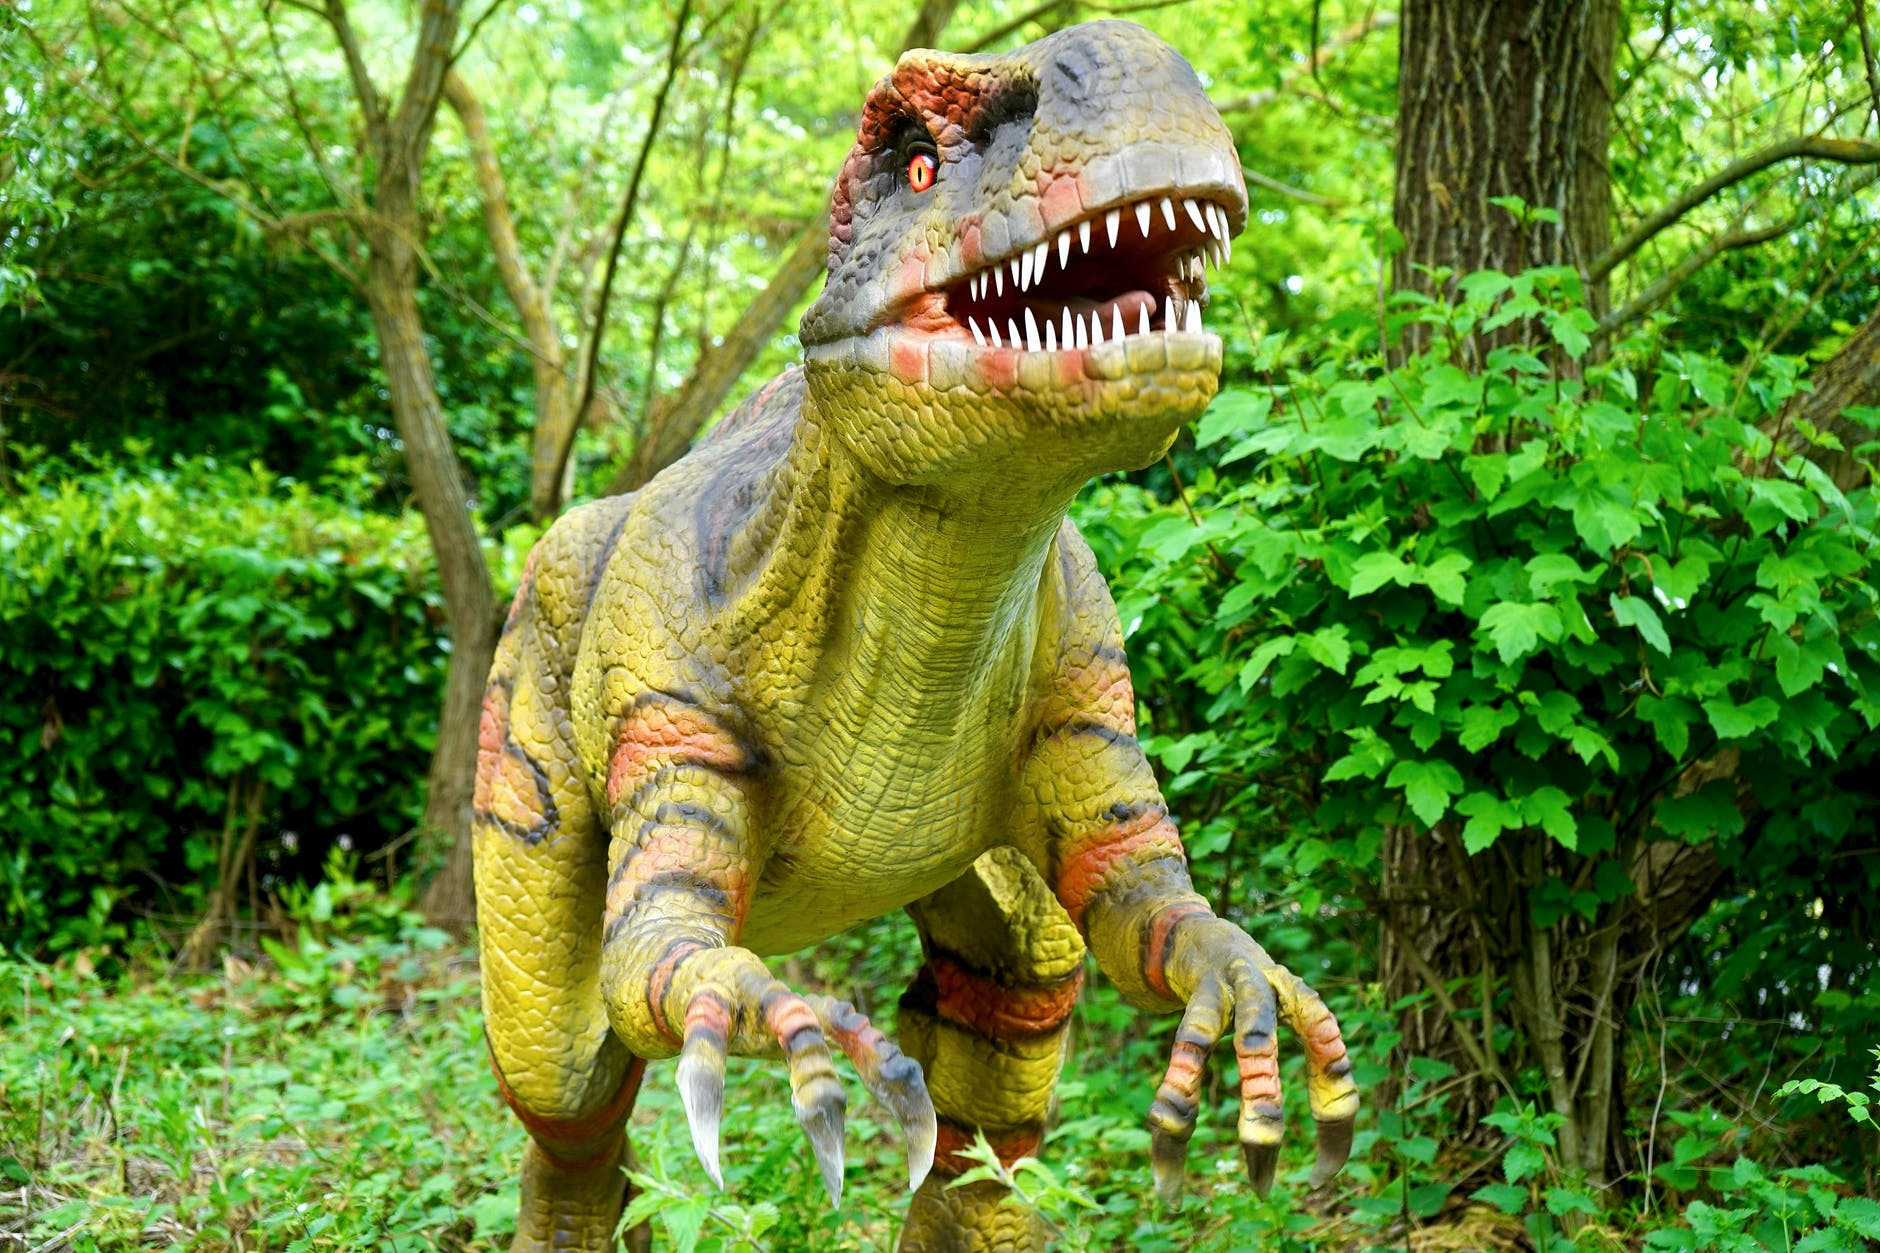 A picture of a T-rex